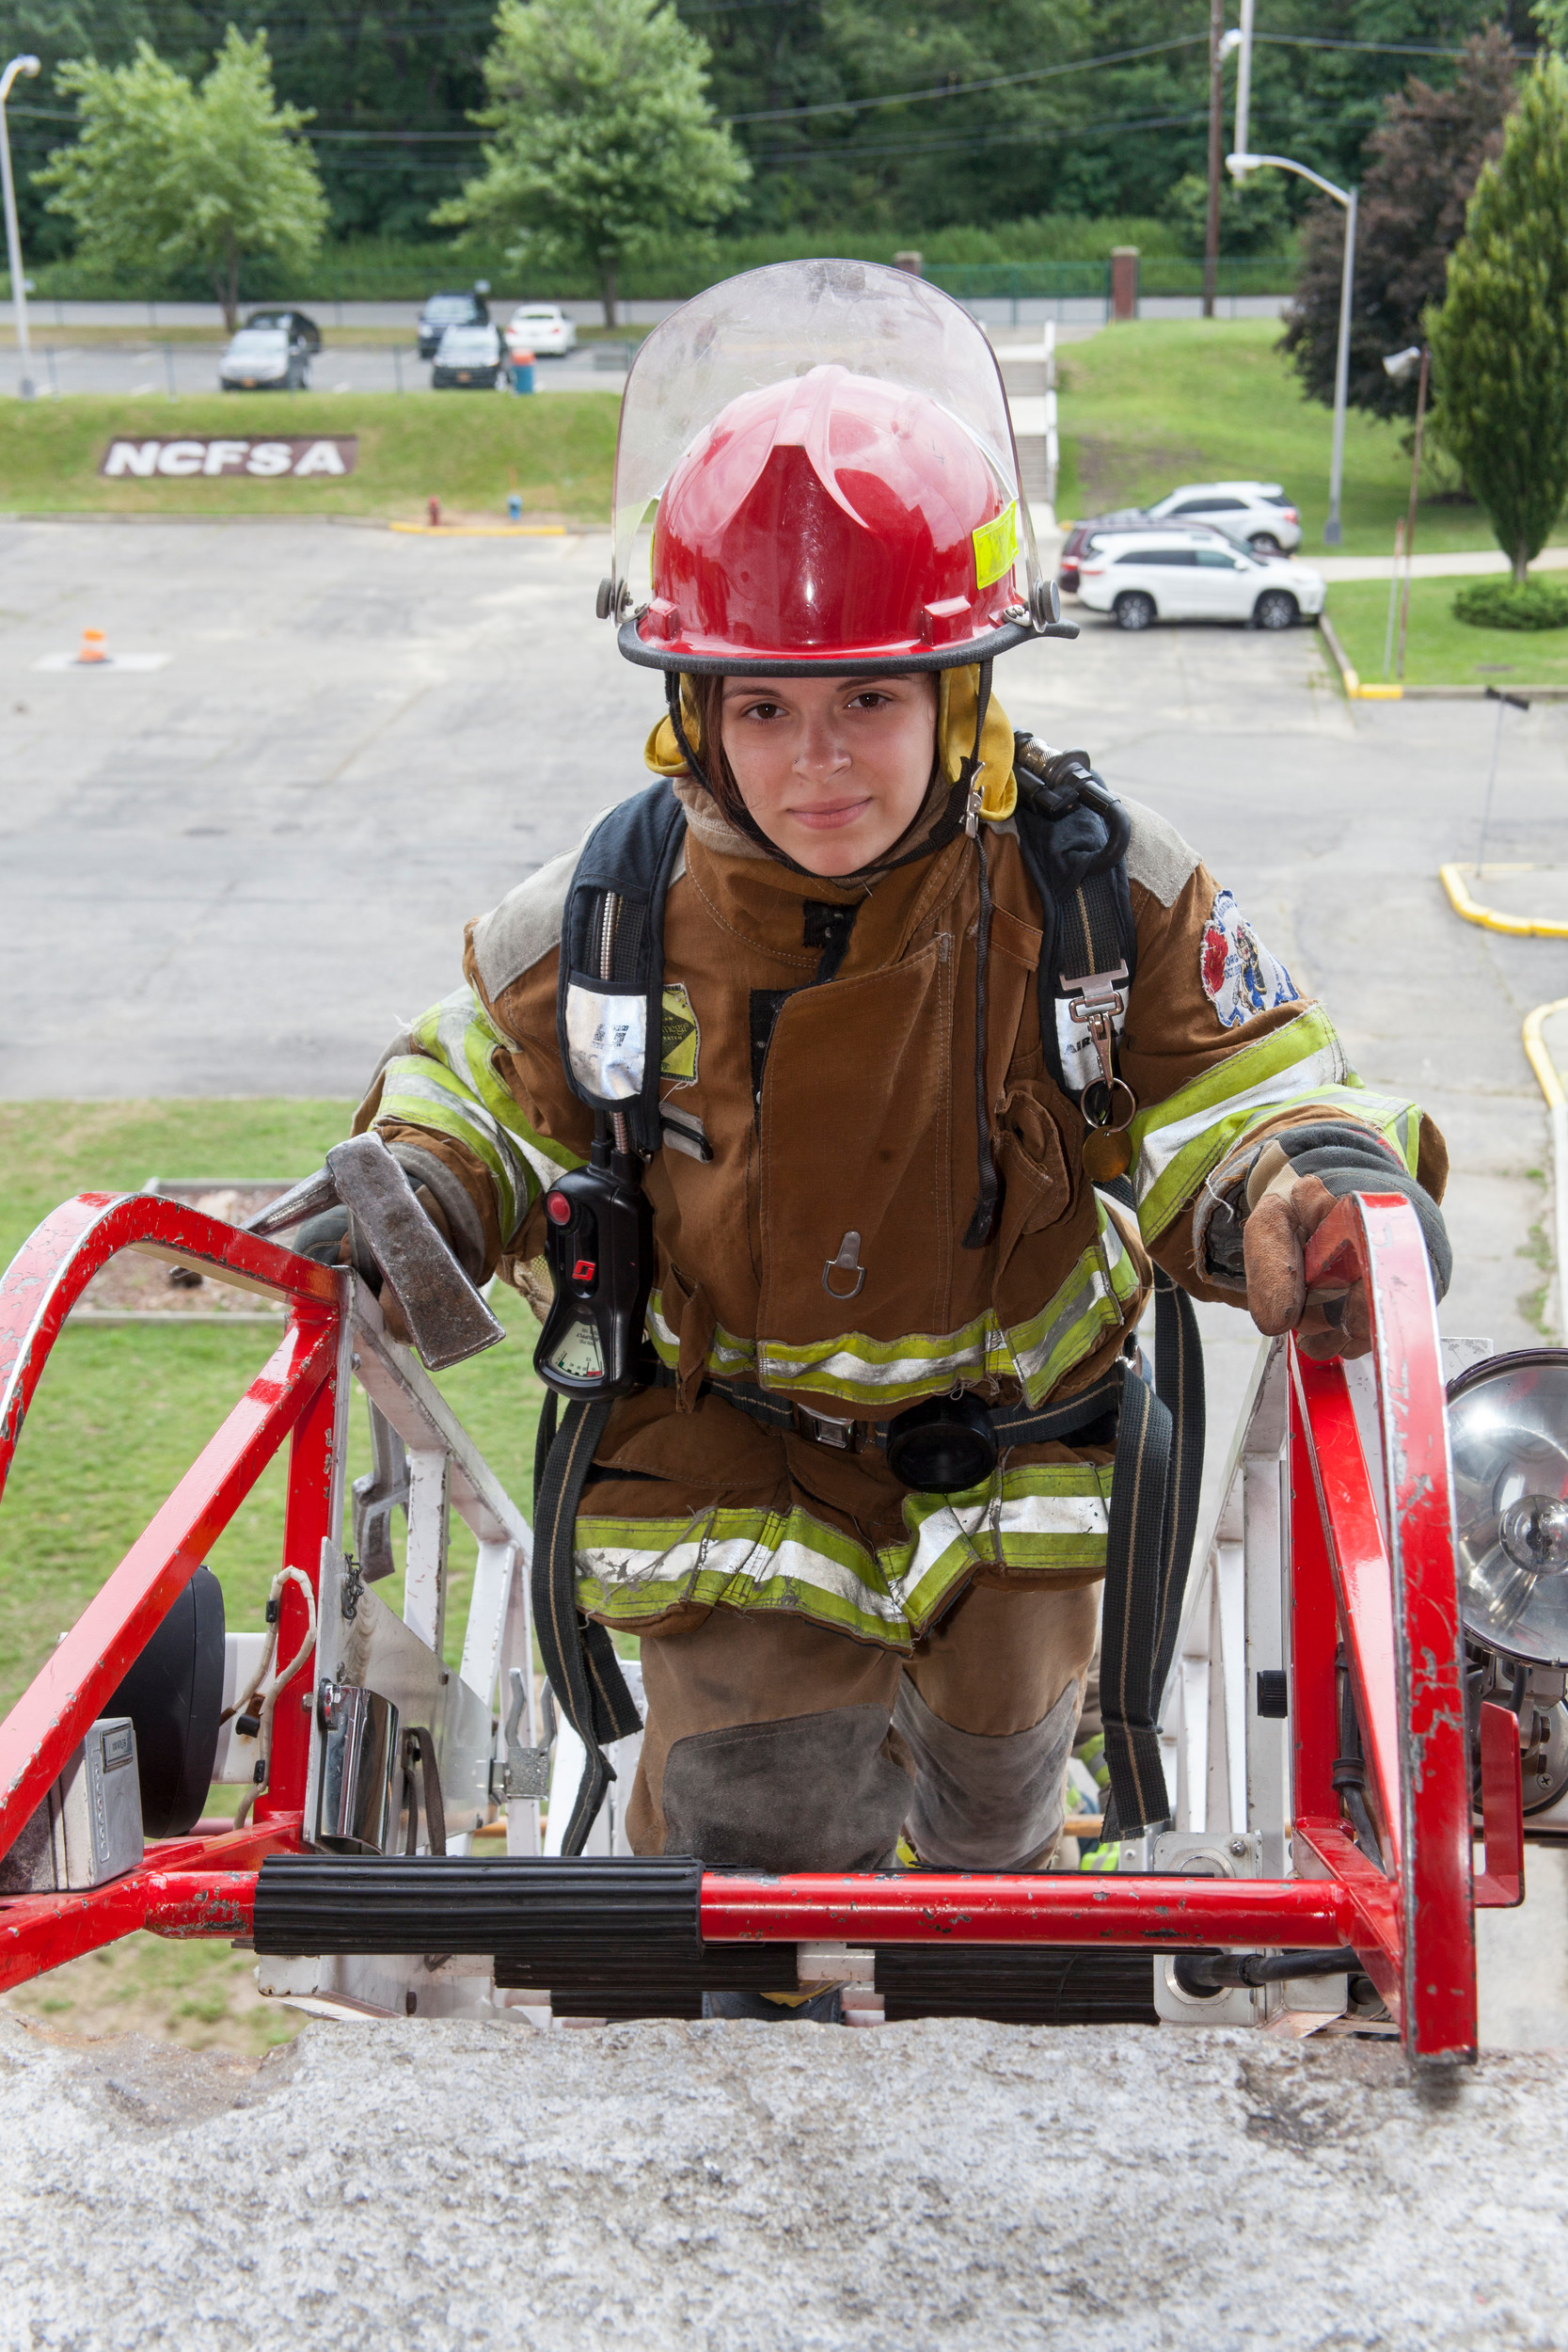 Junior Firefighter, Melanie Sile,s of Franklin Square, climbed the Rescue Ladder three stories high and learned how to enter a burning building at Jr. Fire Camp held at the Fire Academy in Bethpage on July 24.